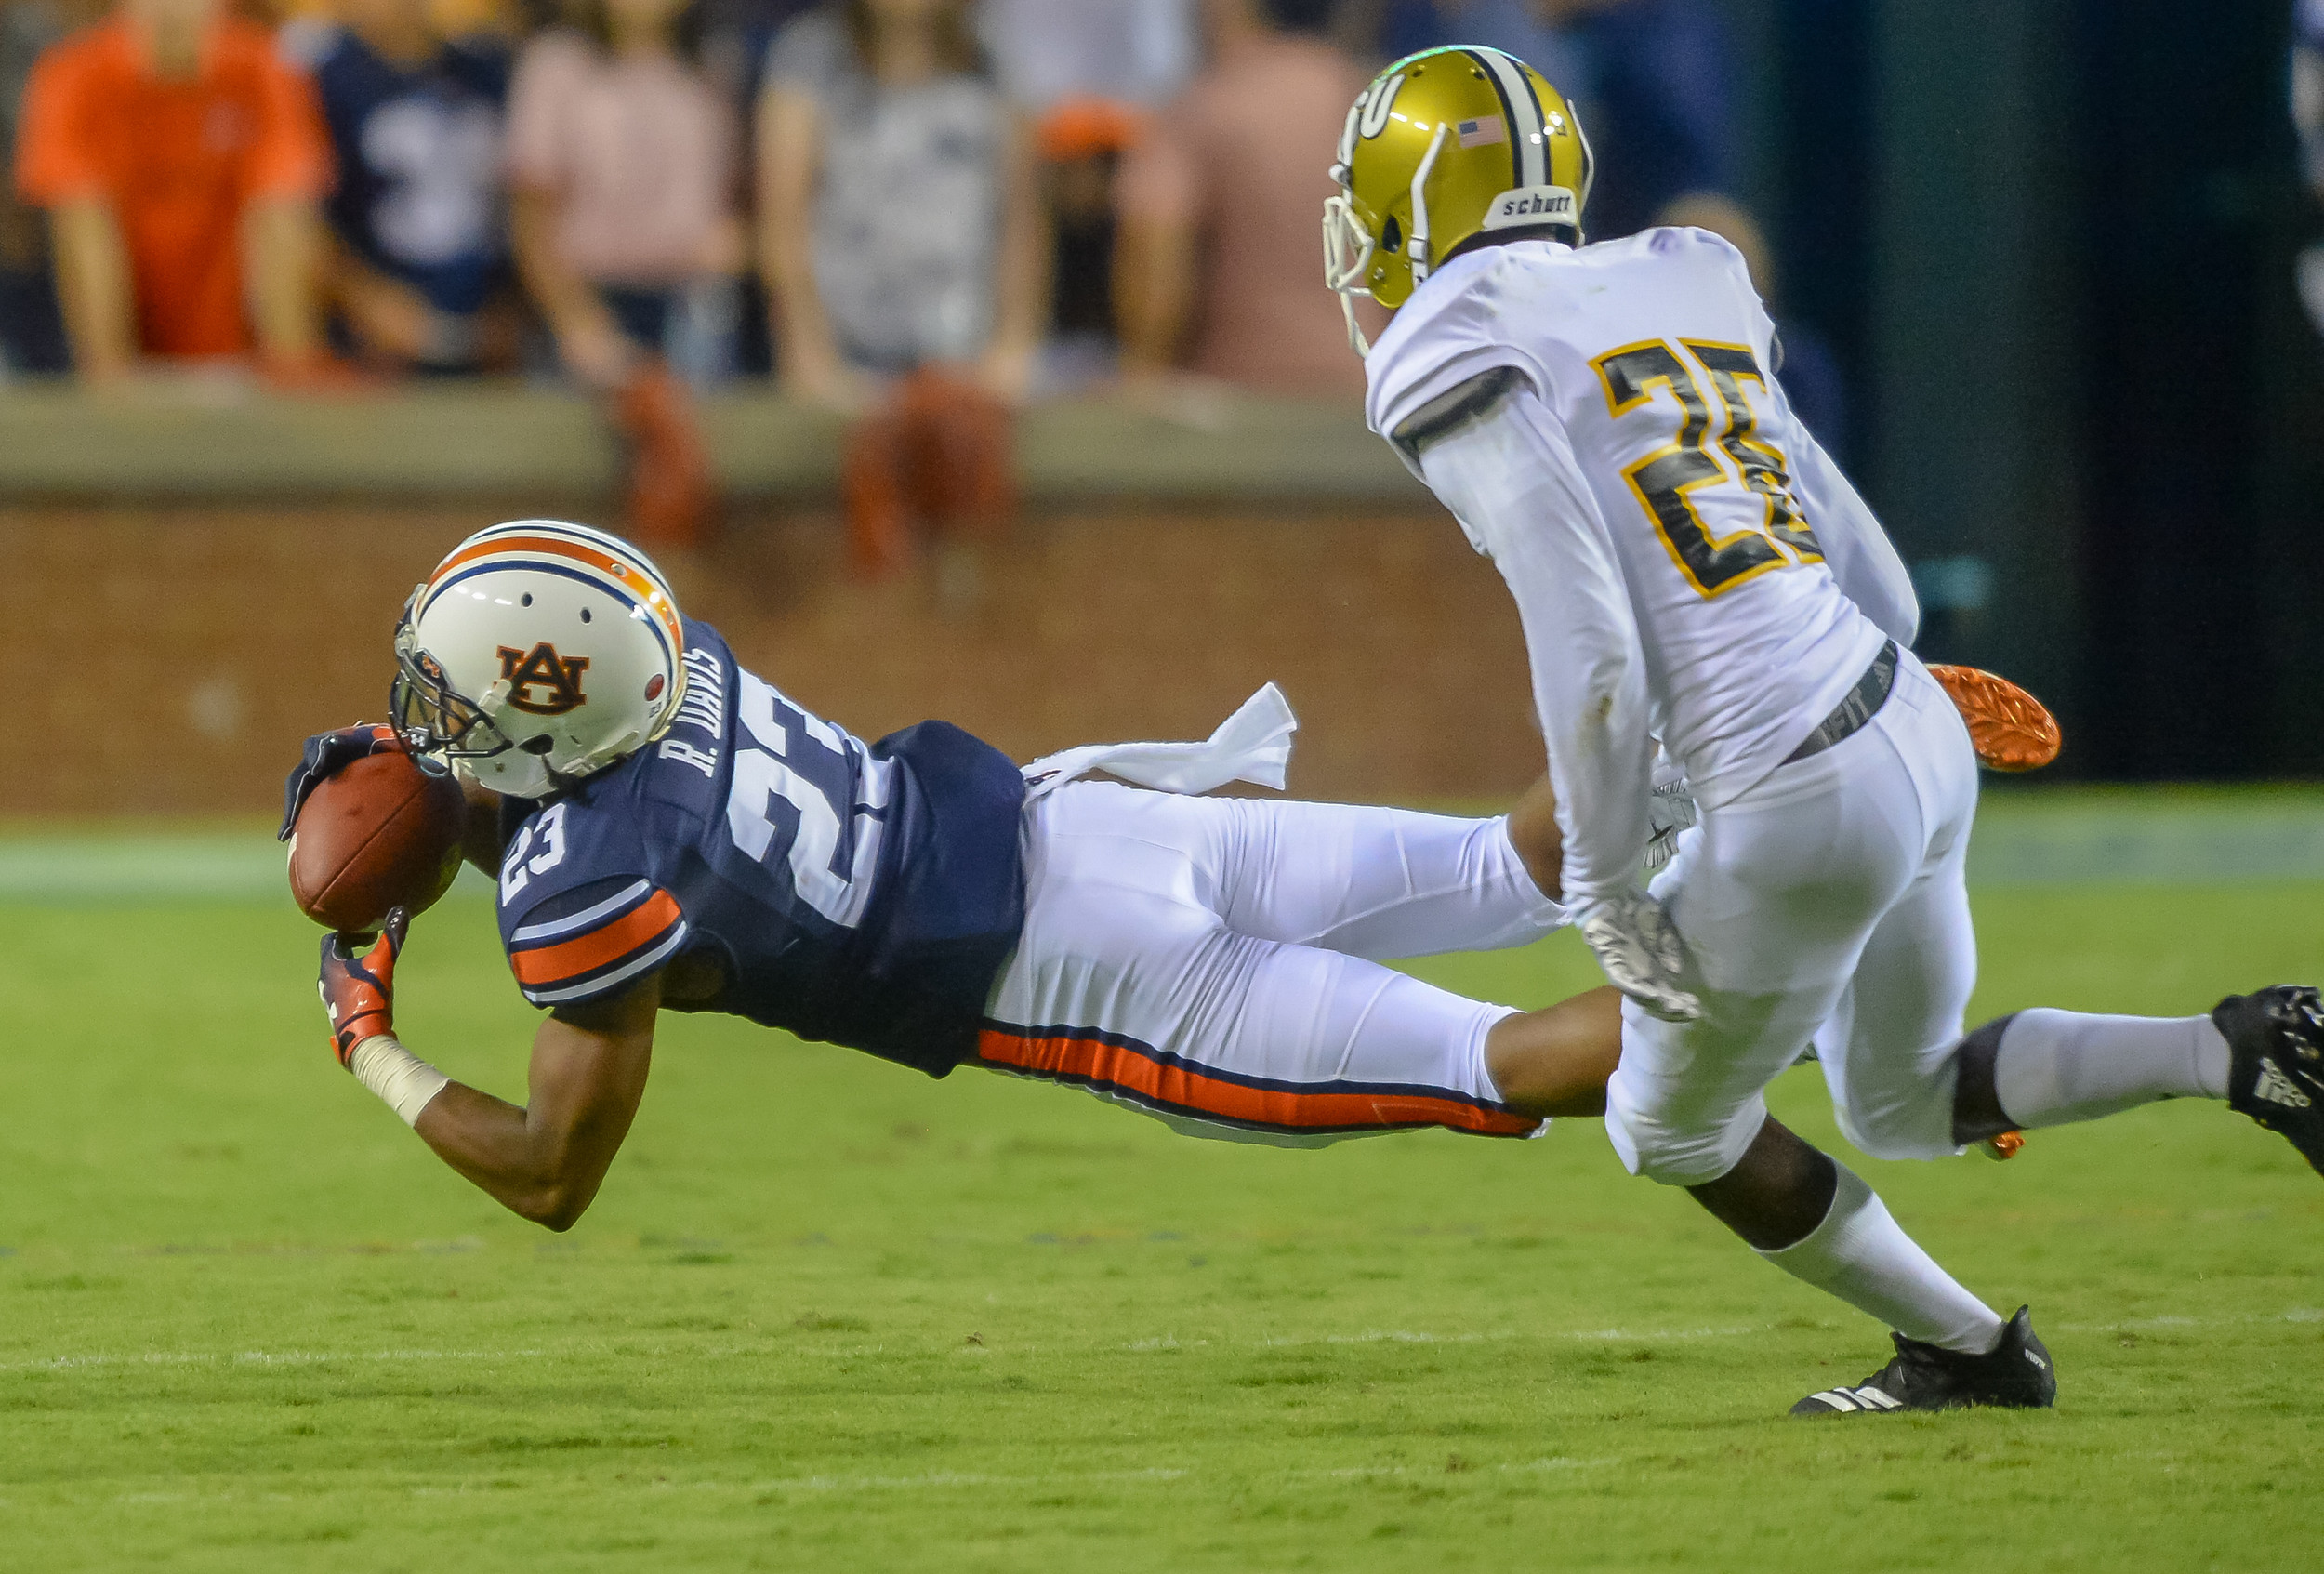 Auburn Tigers wide receiver Ryan Davis (23) make a diving catch in front of Alabama State Hornets defensive back Davian Brantley (29) during the first half of Saturday's game, at Jordan Hare Stadium in Auburn, AL. (Contributed by Jeff Johnsey)